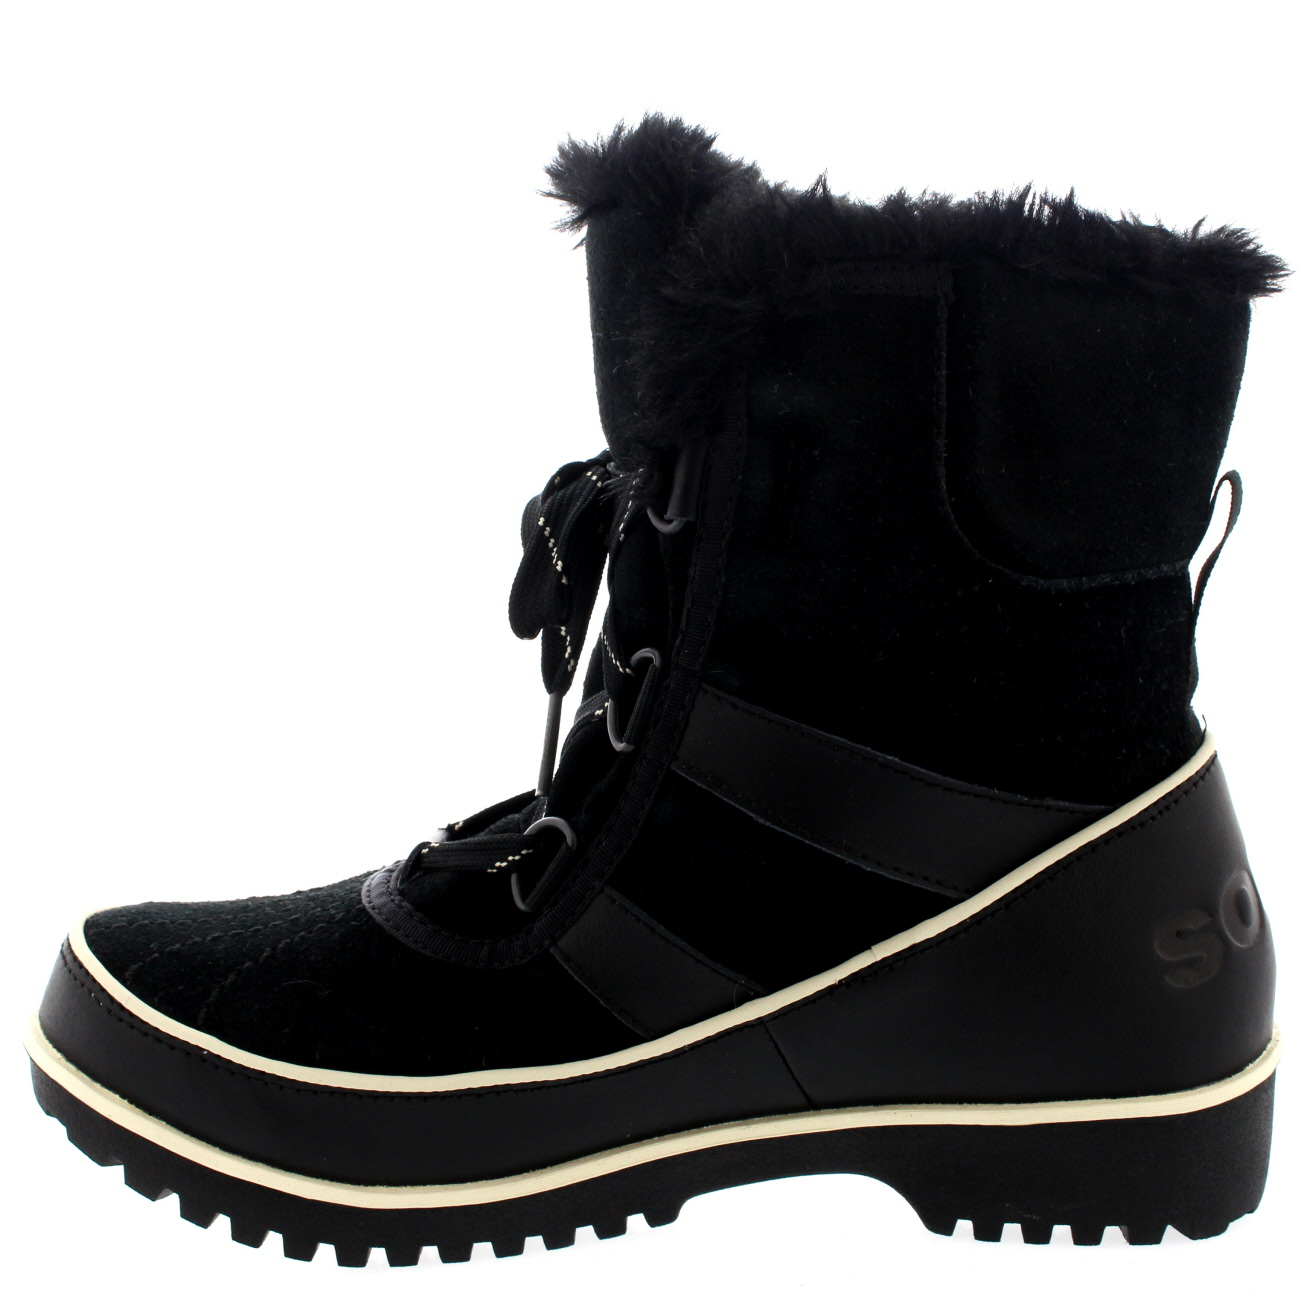 Ladies Sorel Tivolli Ii Winter Snow Lace Up Rain Warm Fur Lined Boots All Sizes